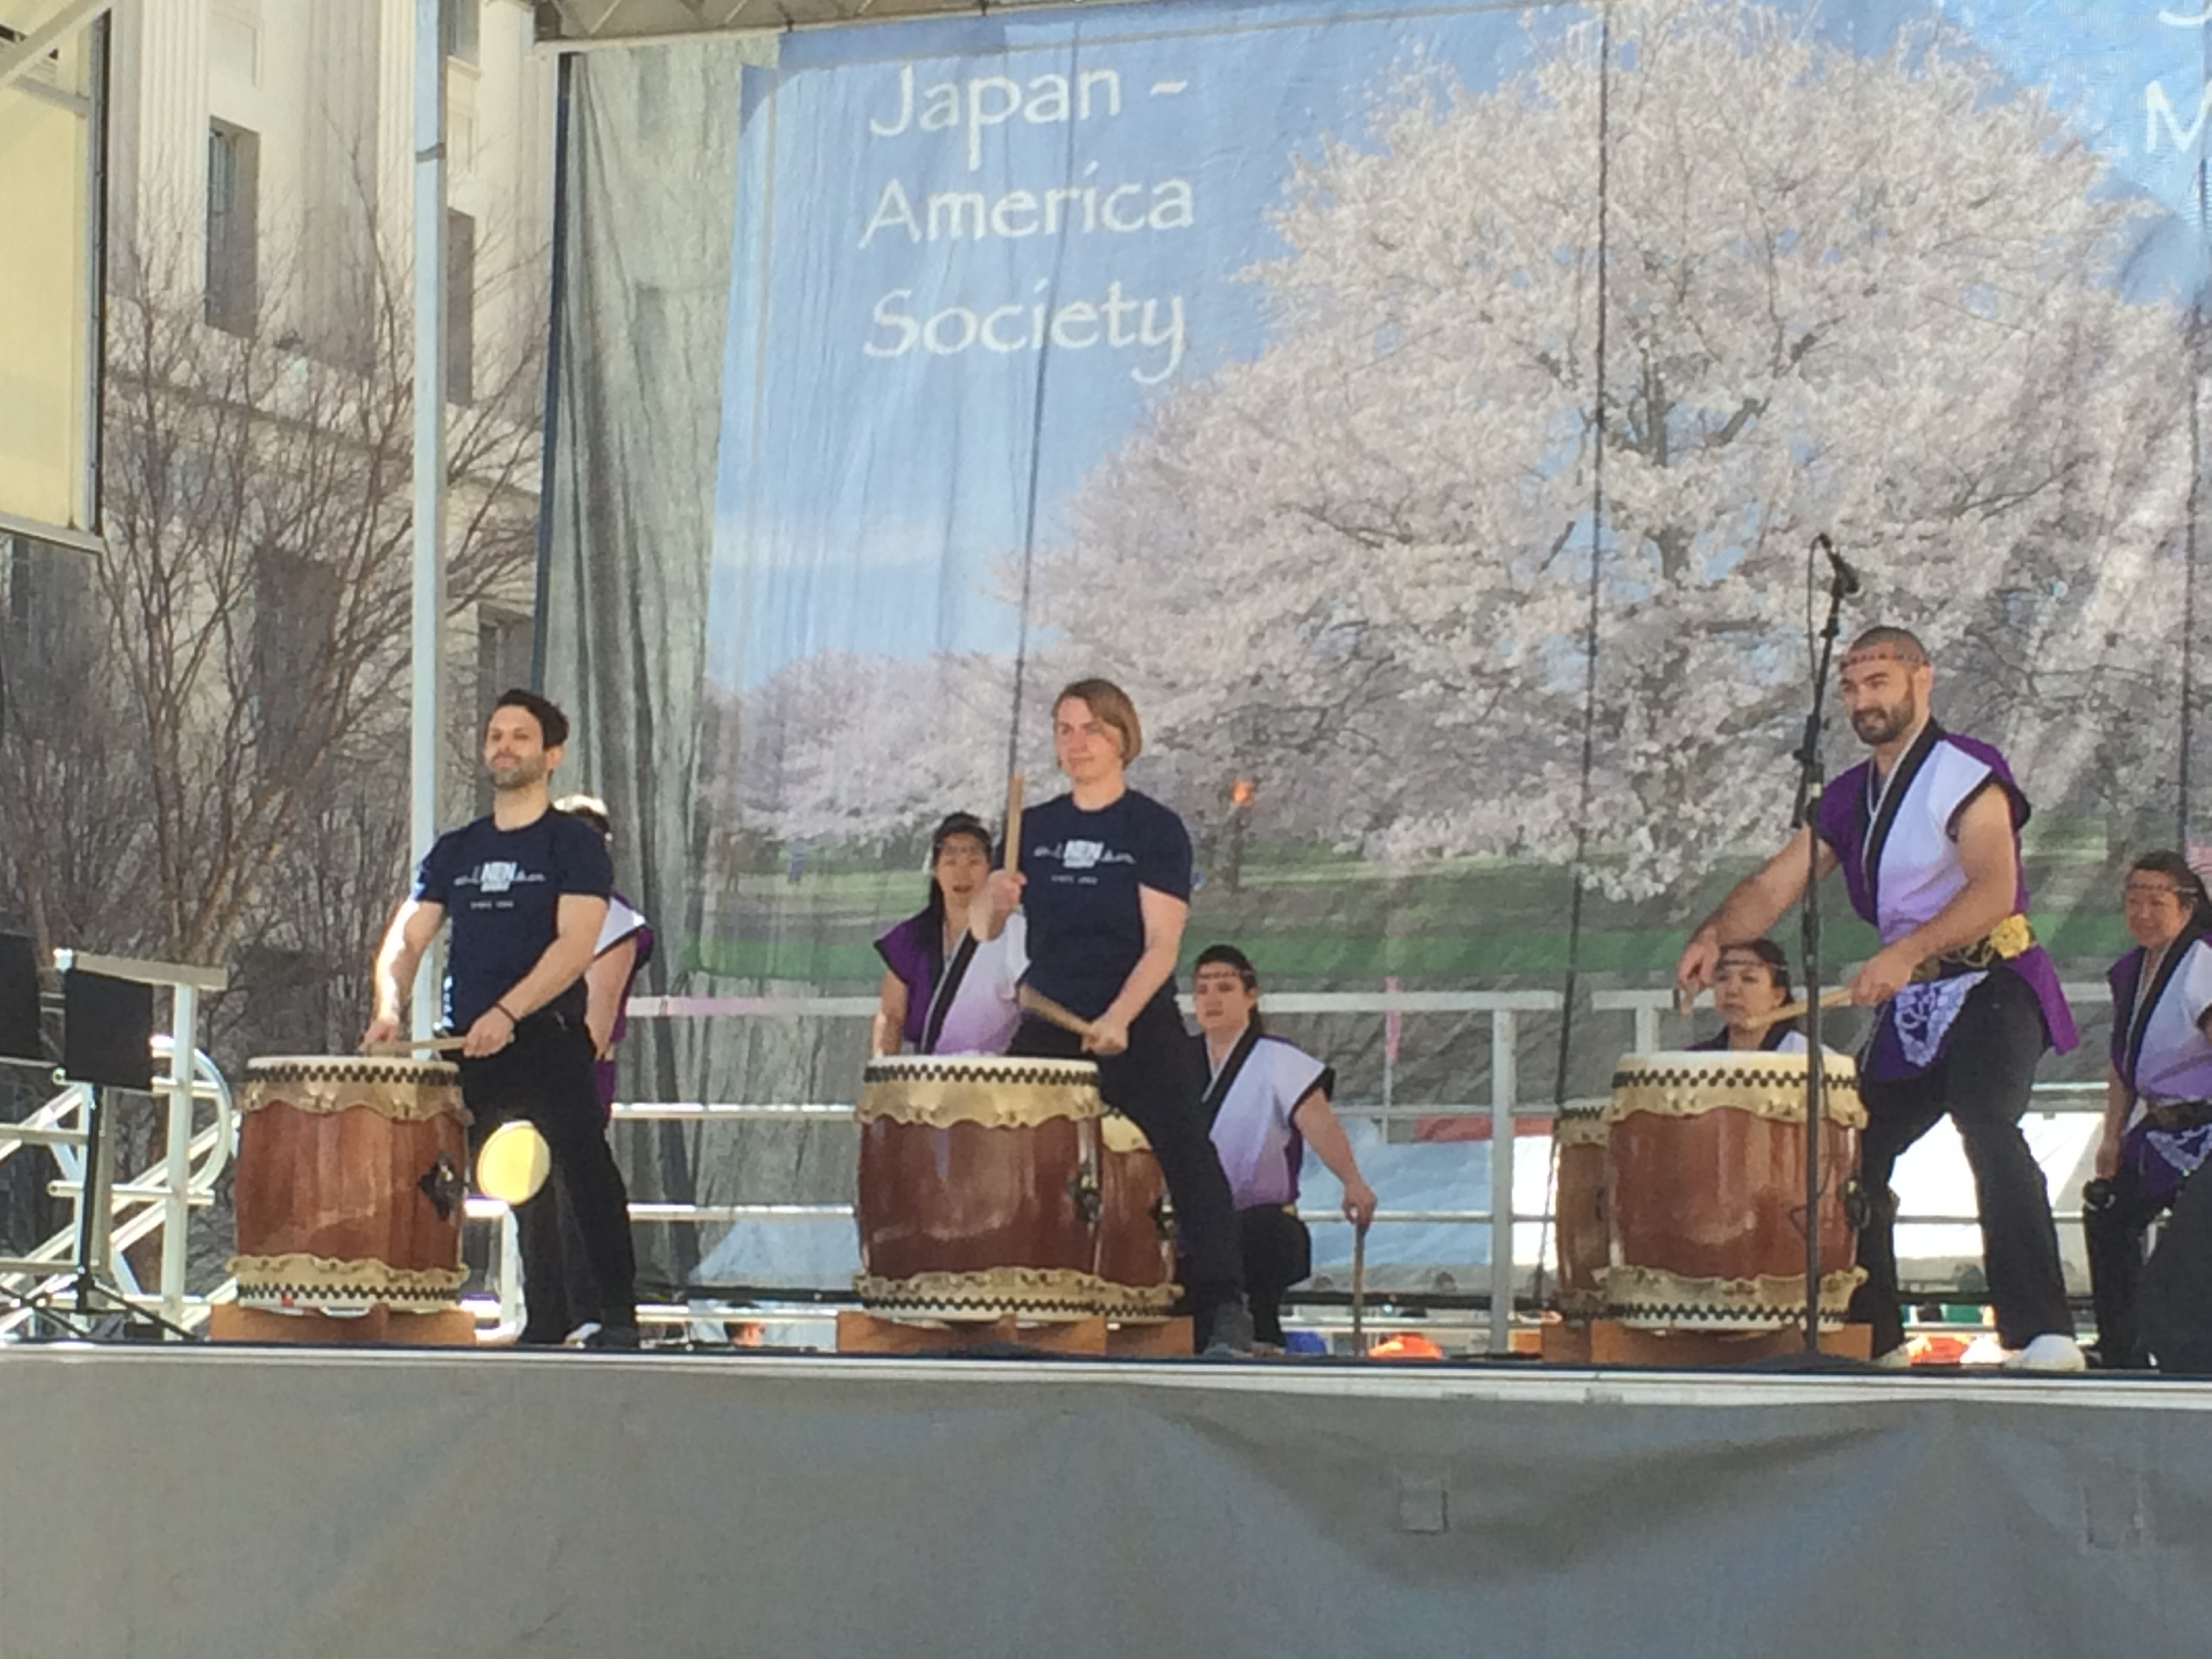 Playing Renshuu with Nen Daiko at the Cherry Blossom Festival